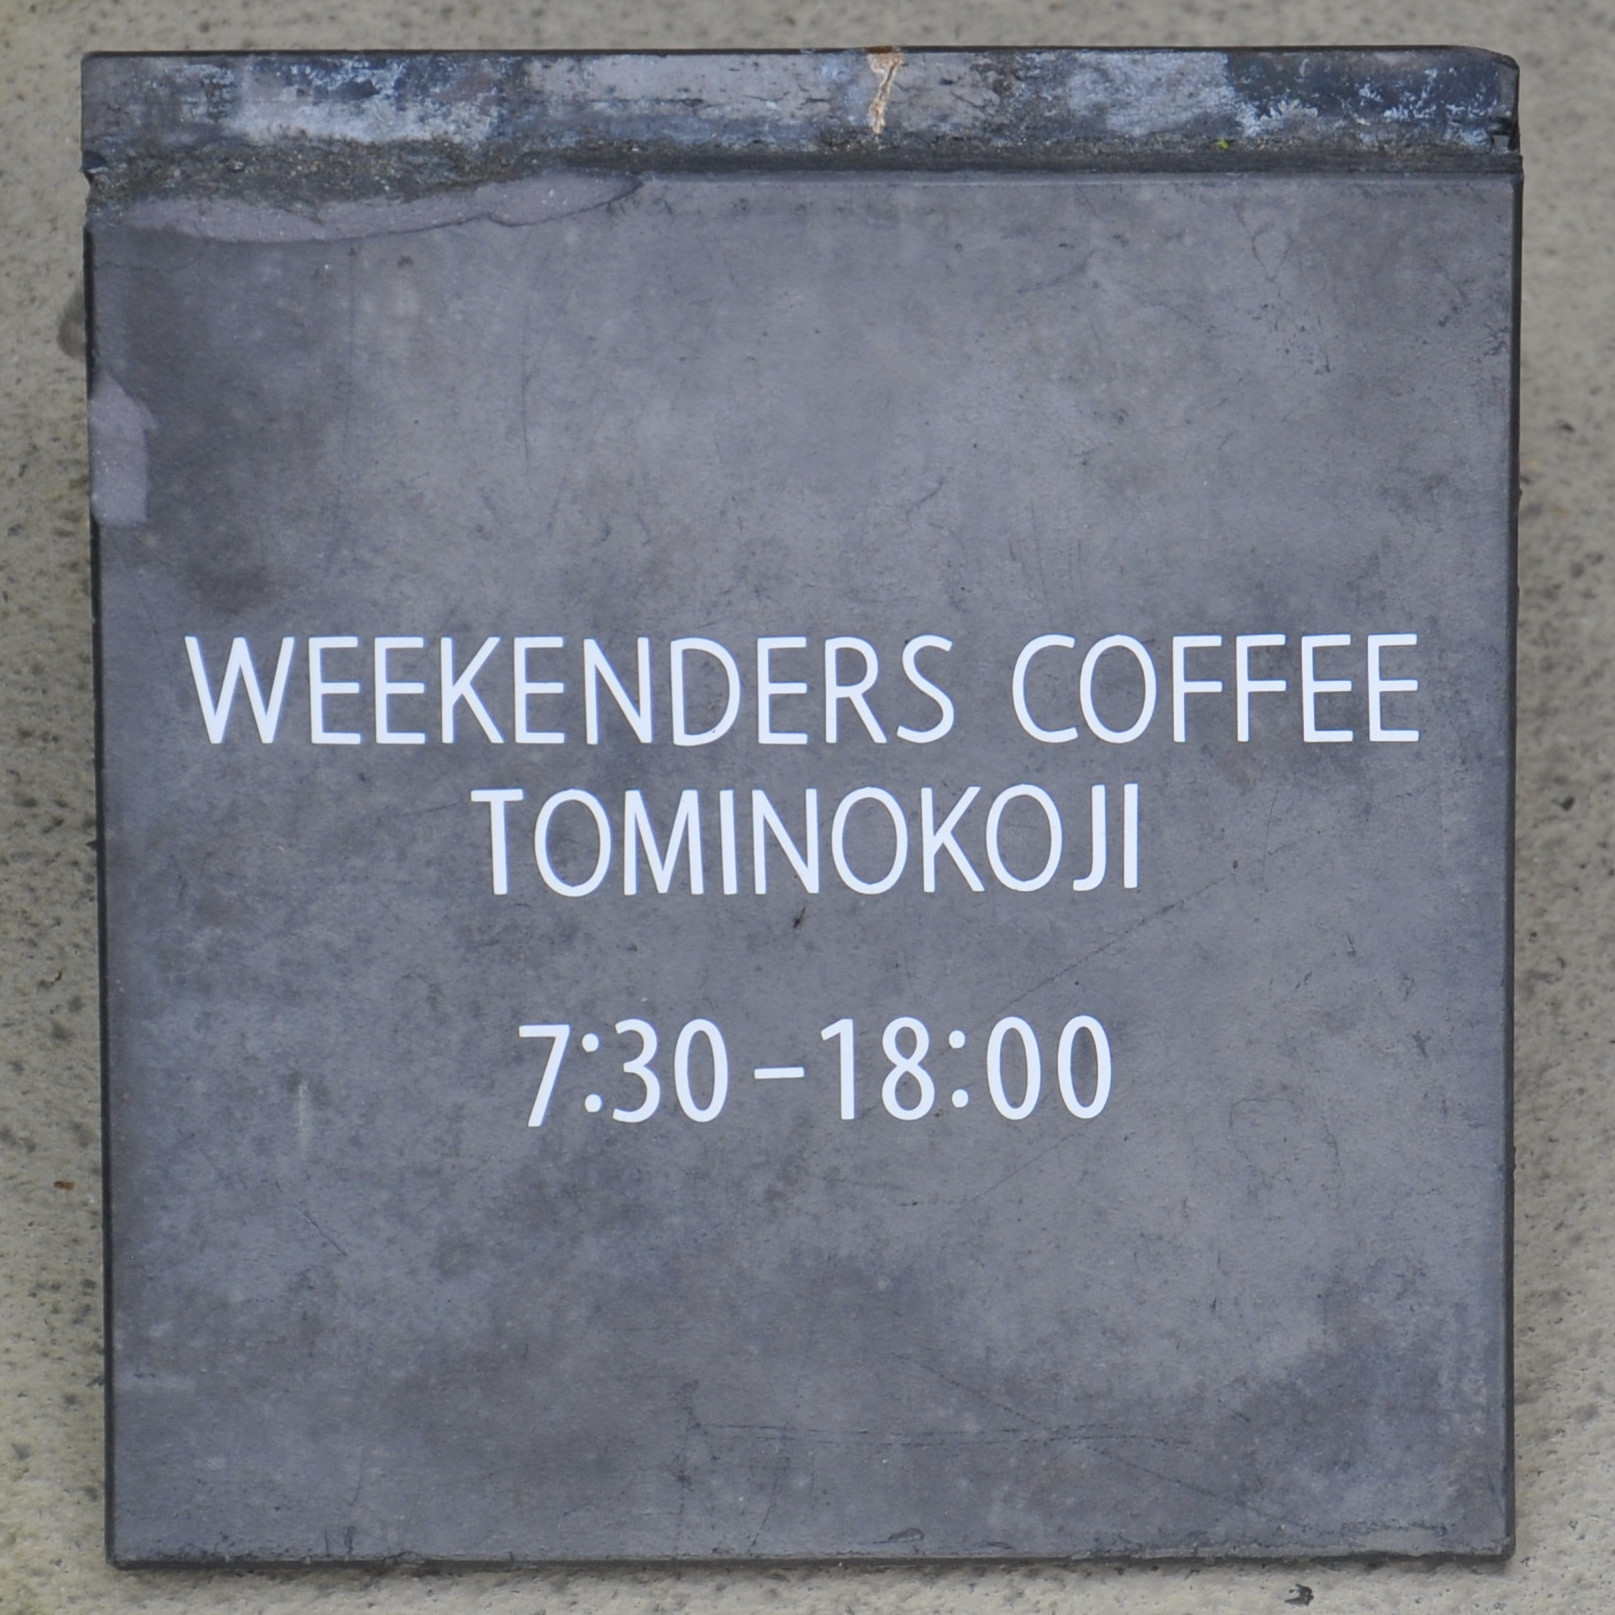 A small notice on the floor at Weekenders Coffee in Kyoto tells you that you've come to the right place.